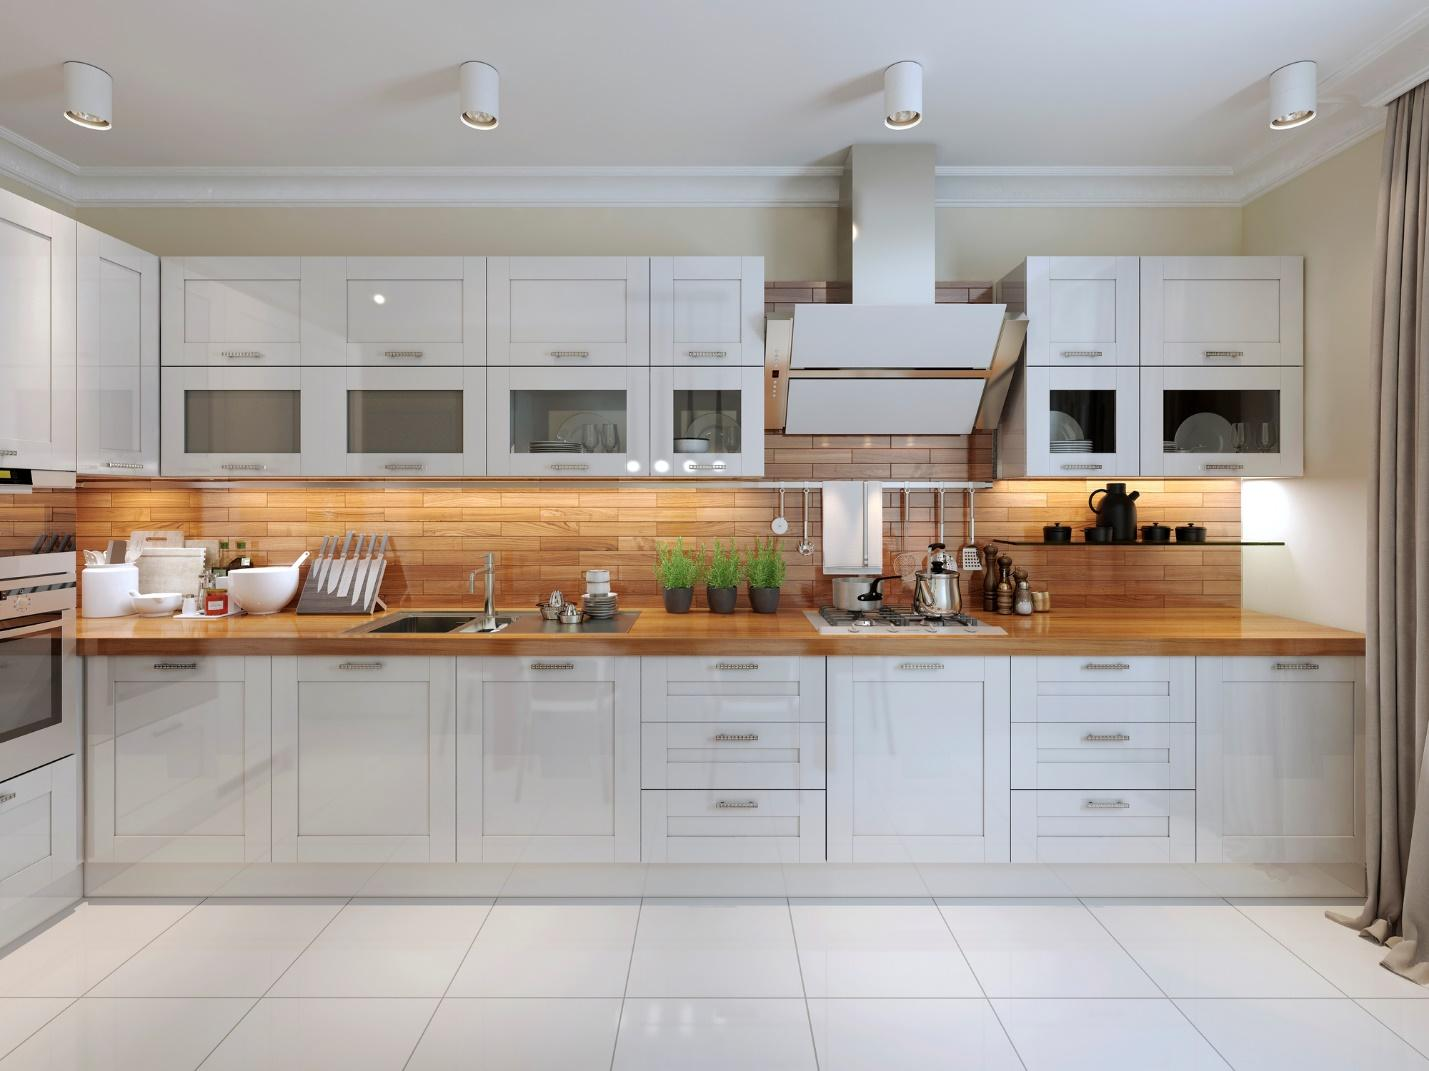 Kitchen Upgrades to Up Your Home Value